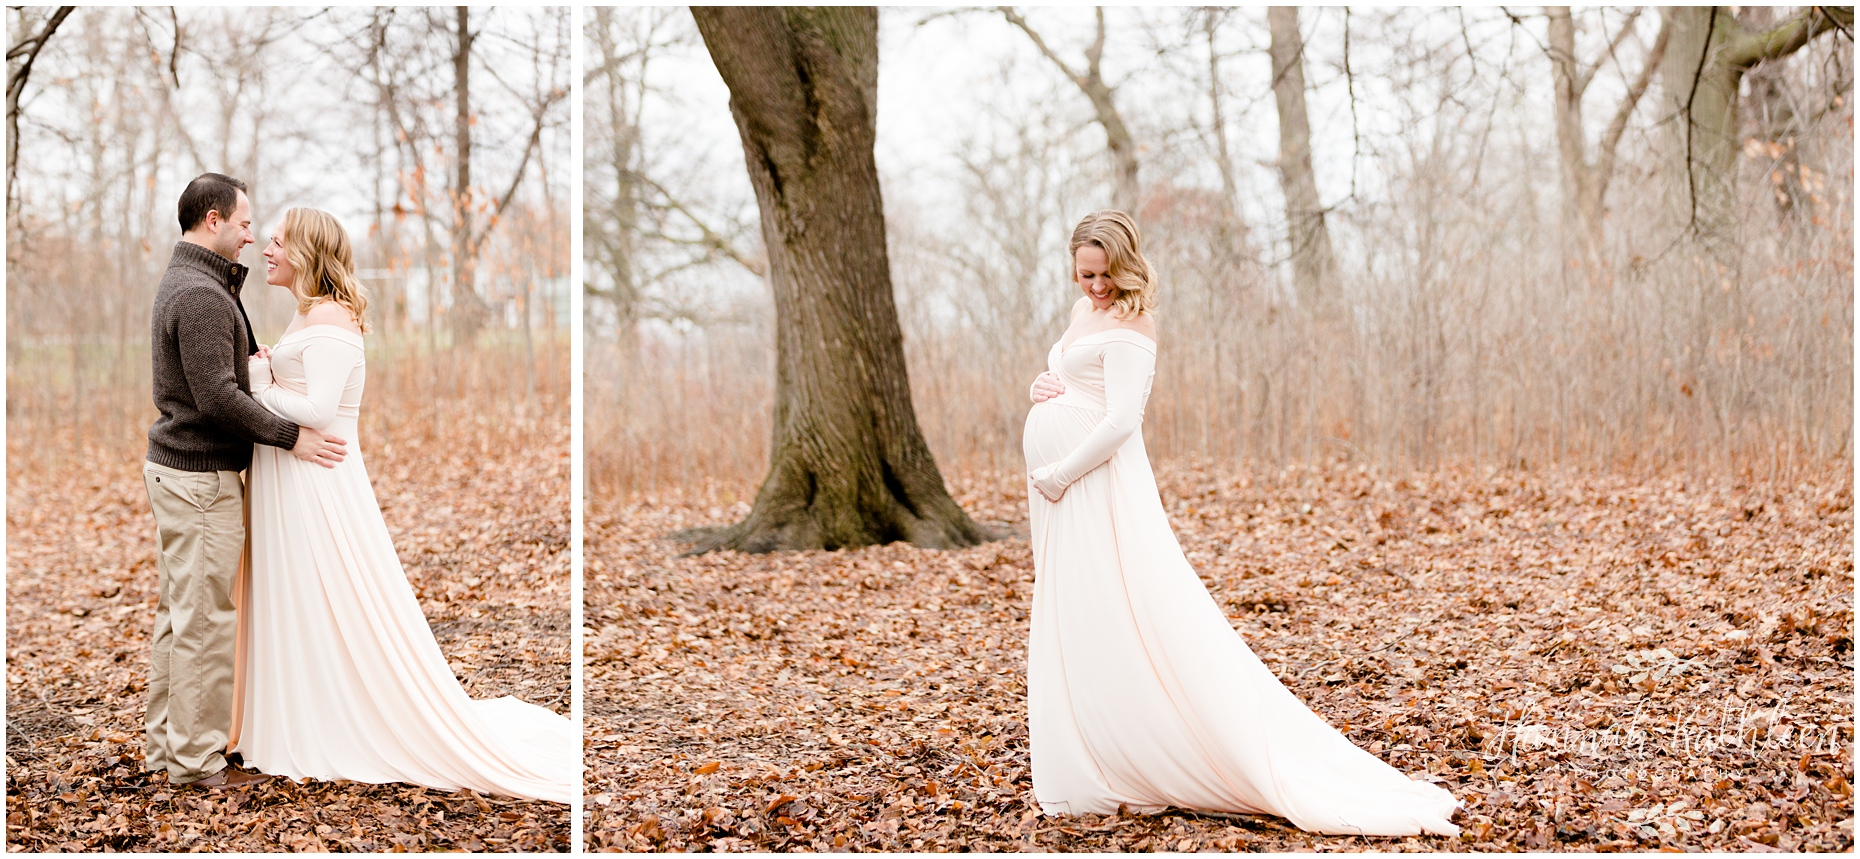 outdoor_lefevre_maternity_photography_buffalo_new_york_history_museum_light_airy